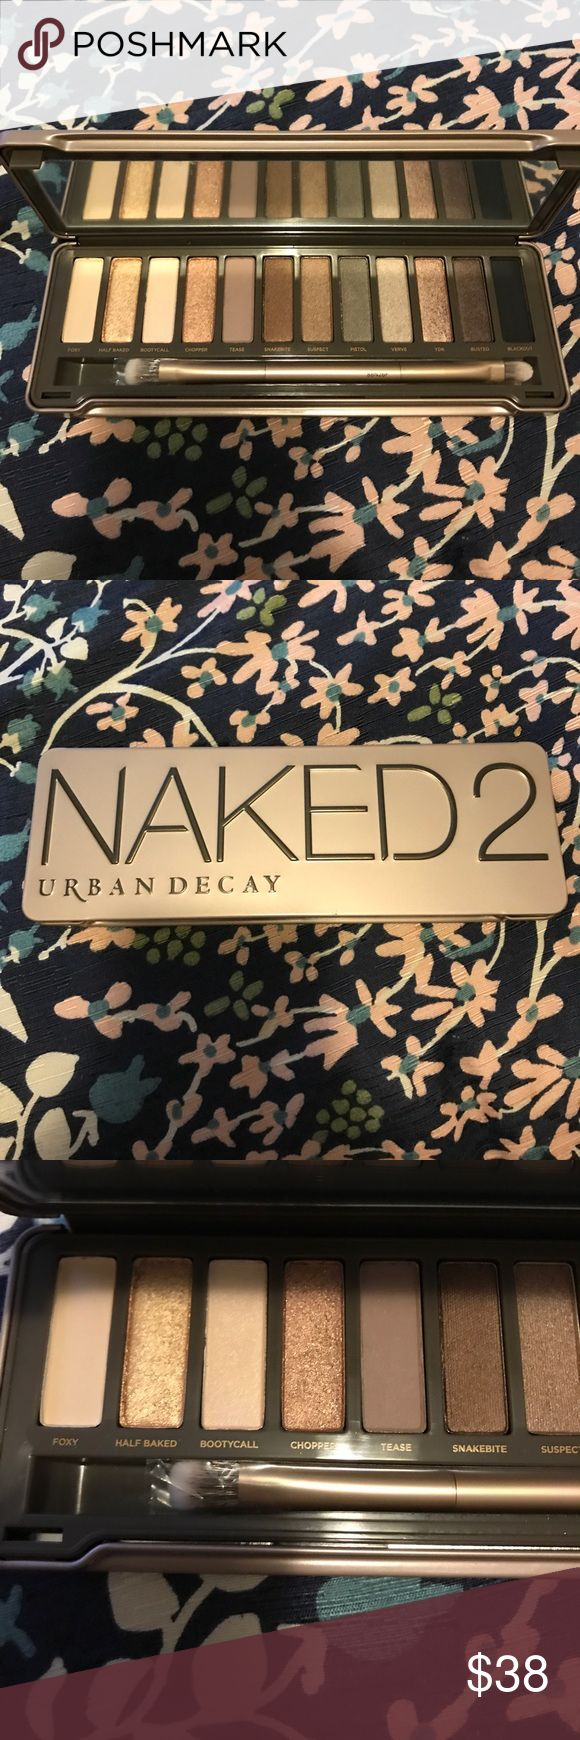 🌟brand new🌟 urban decay naked 2 palette Never used or swatched. Doesn't include box because it came in the vault gift set. 12 signature urban decay shades that differ from the original palette and Eyeshadow brush. 100% authentic. Please ask me any questions you have and I will prove authenticity. Urban Decay Makeup Eyeshadow